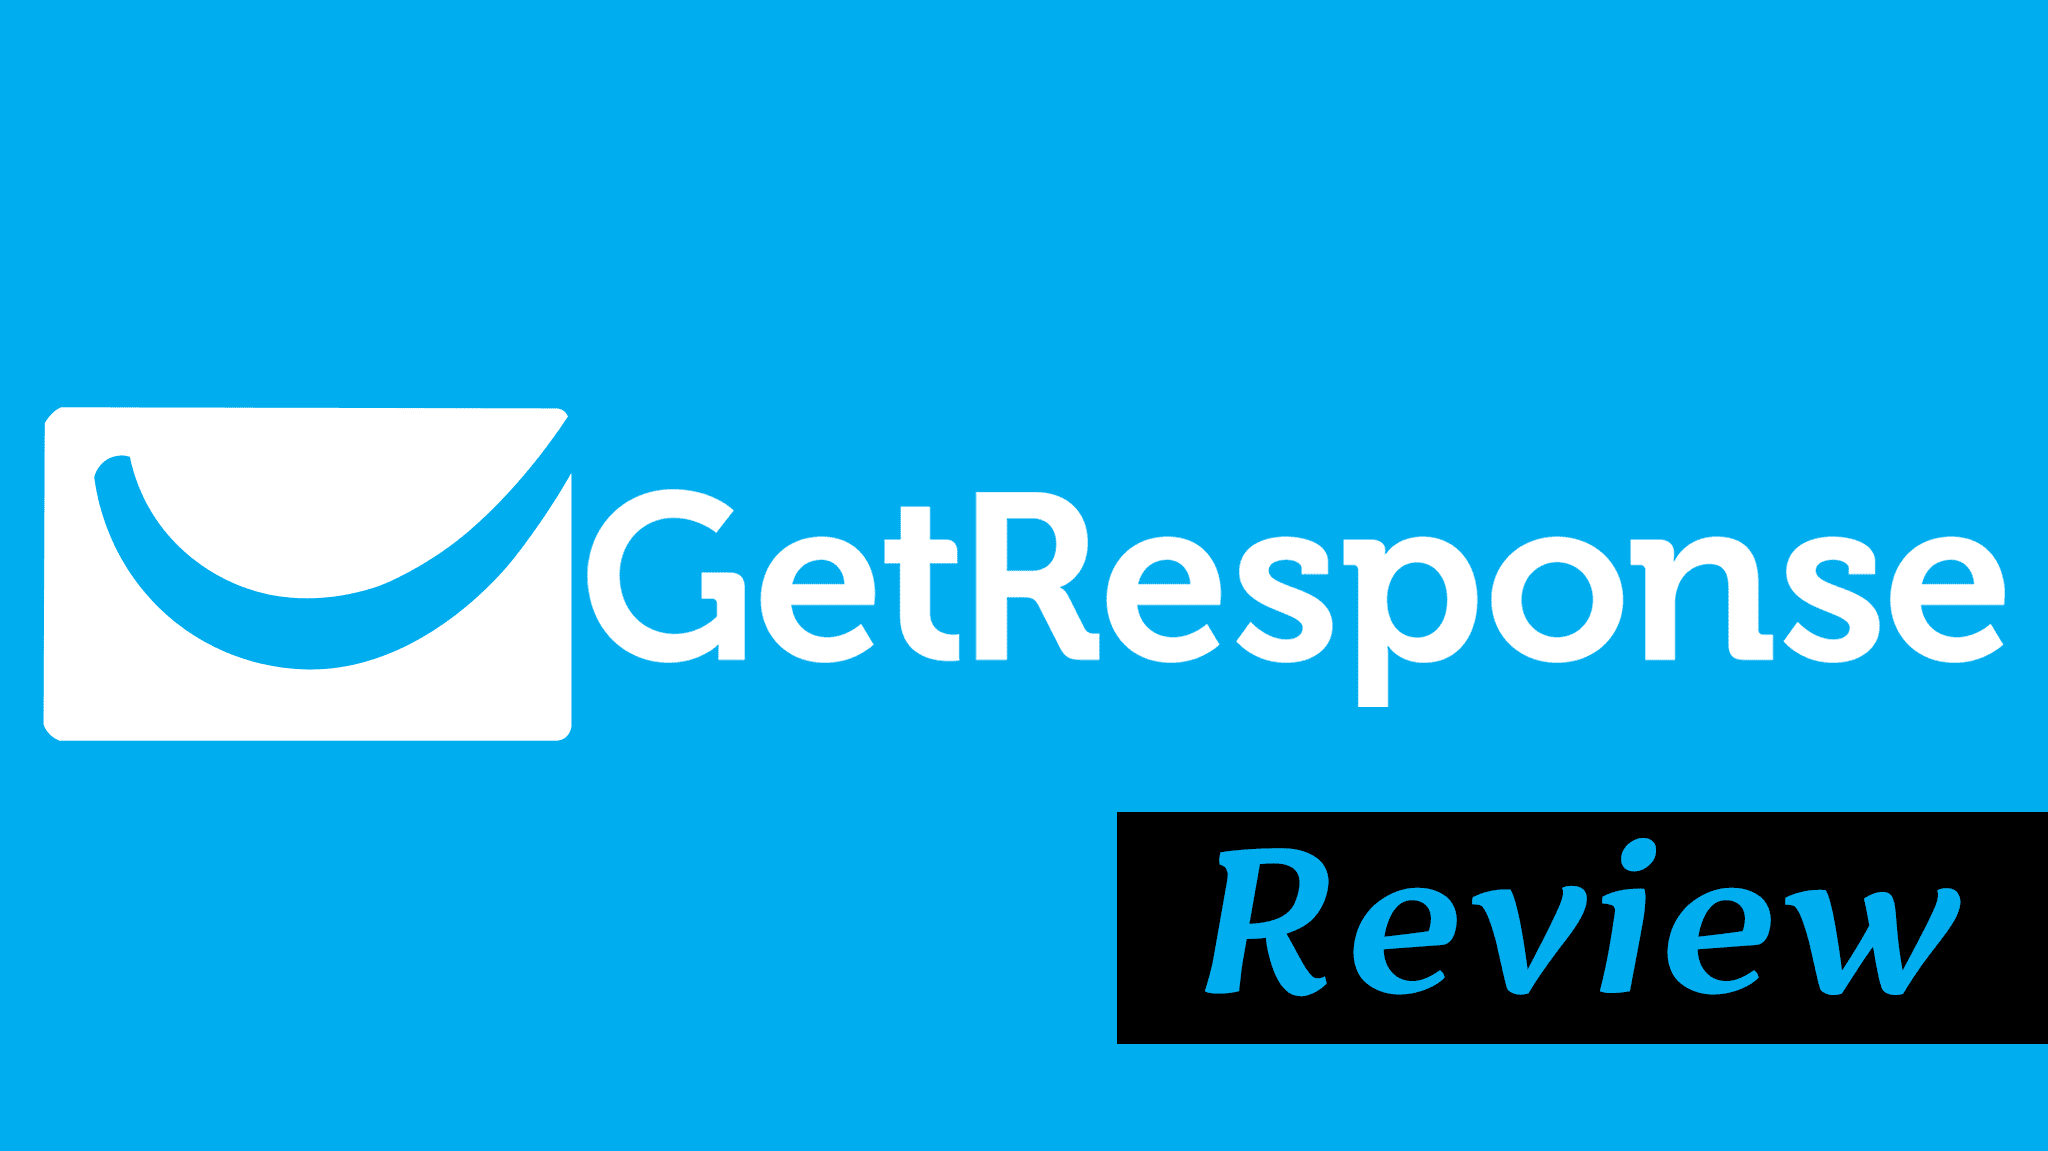 GetResponse Review from a Real 10 year Customer